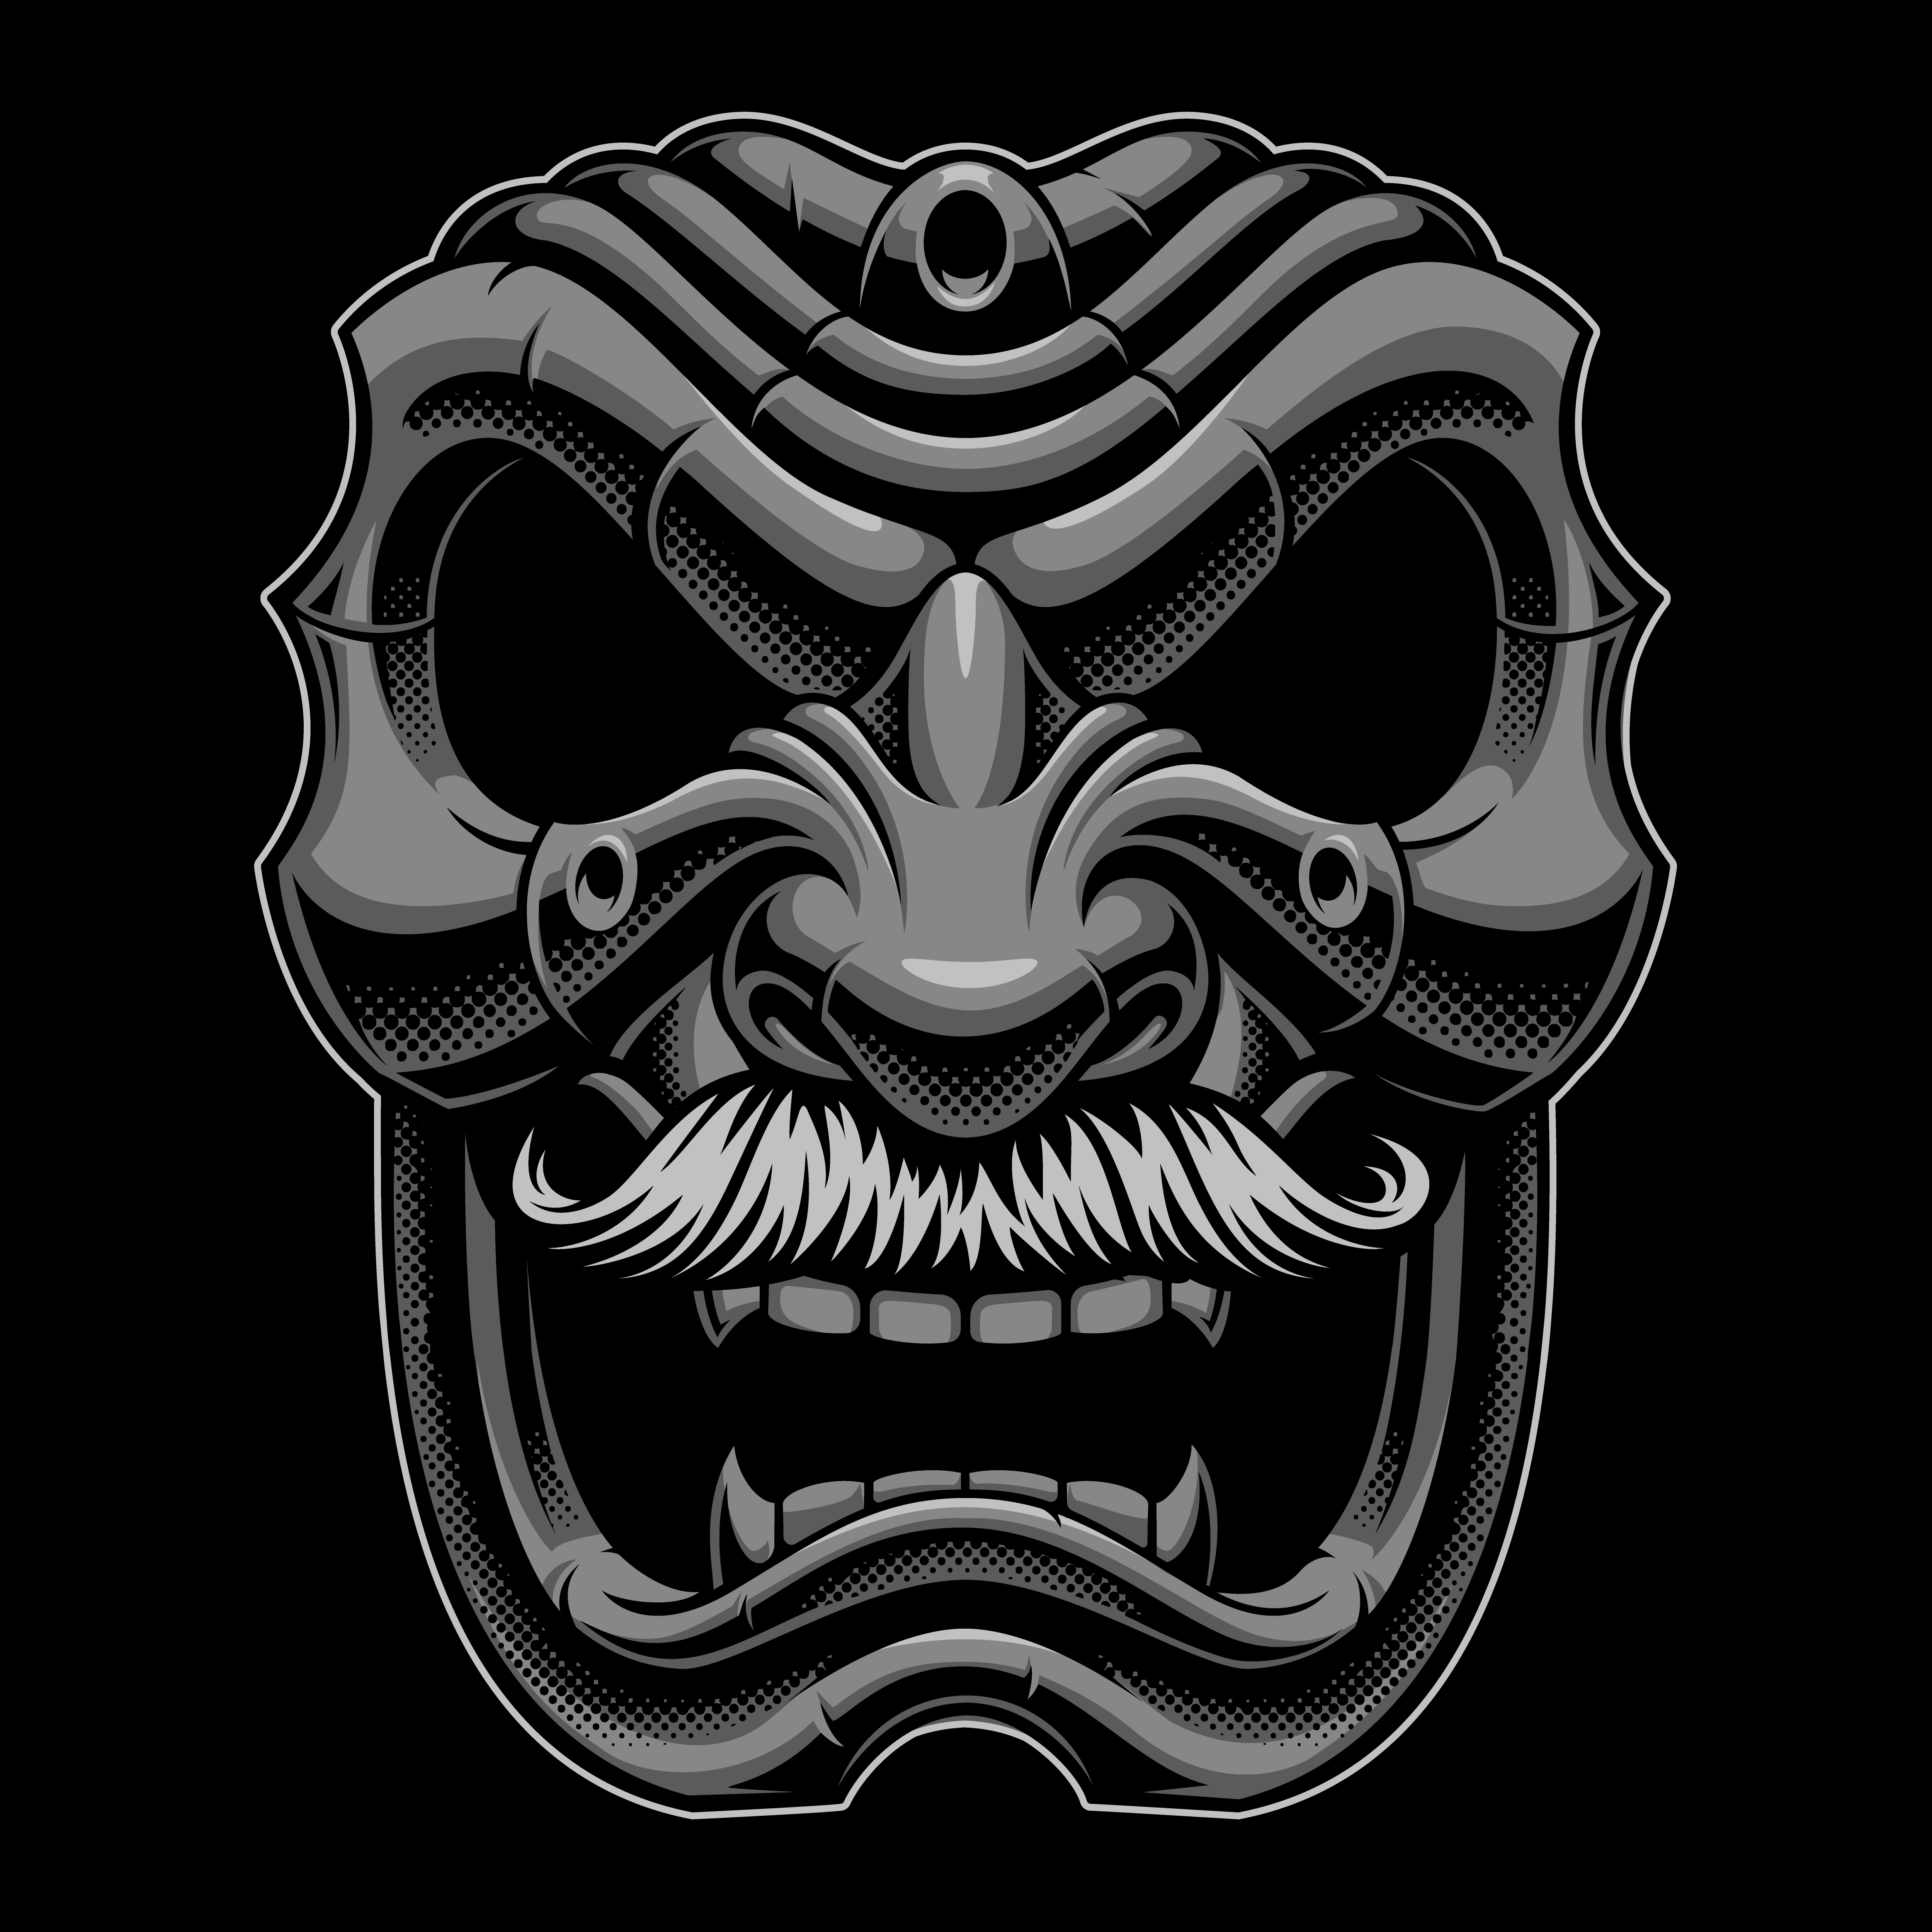 Samurai mask with mustahce. - Download Free Vectors ...